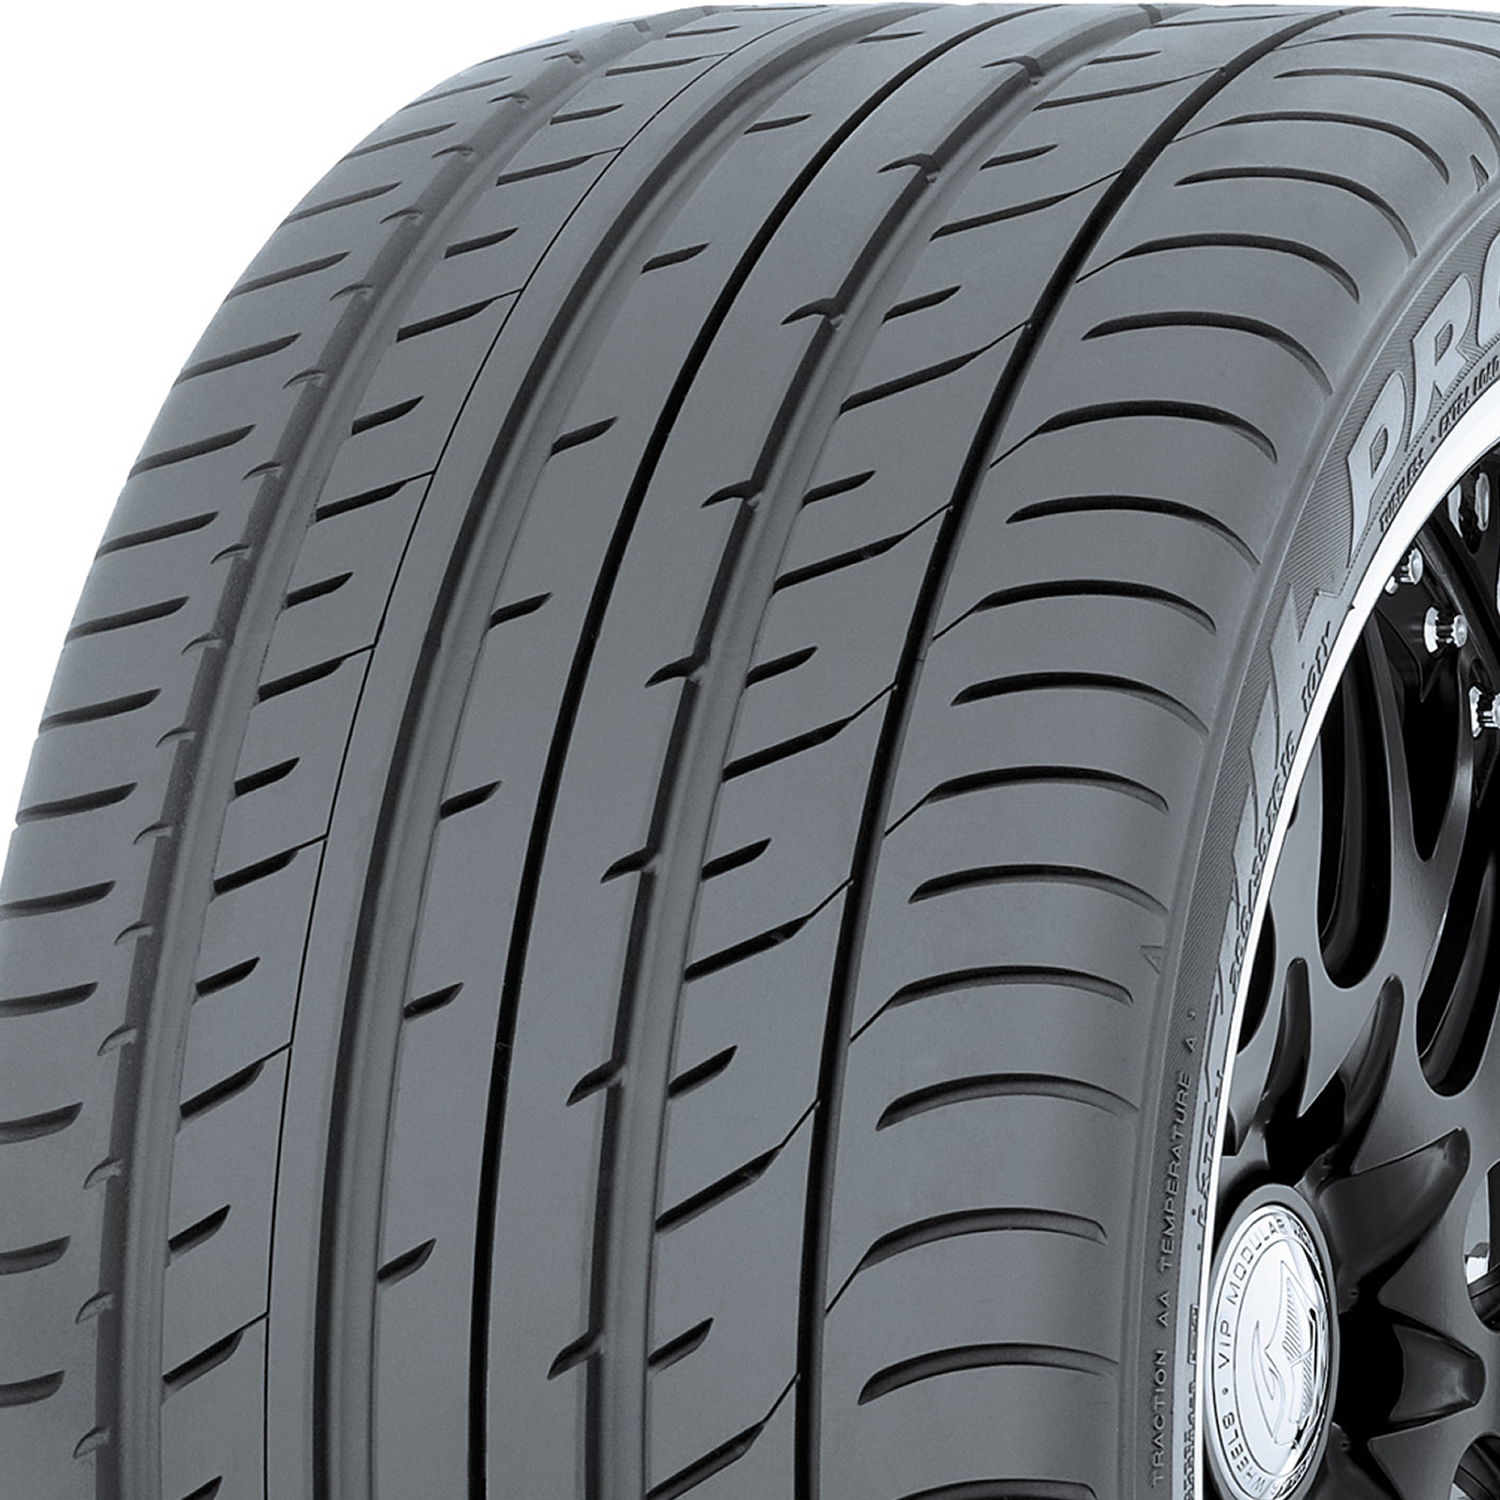 Toyo Tires Proxes T1 Sport